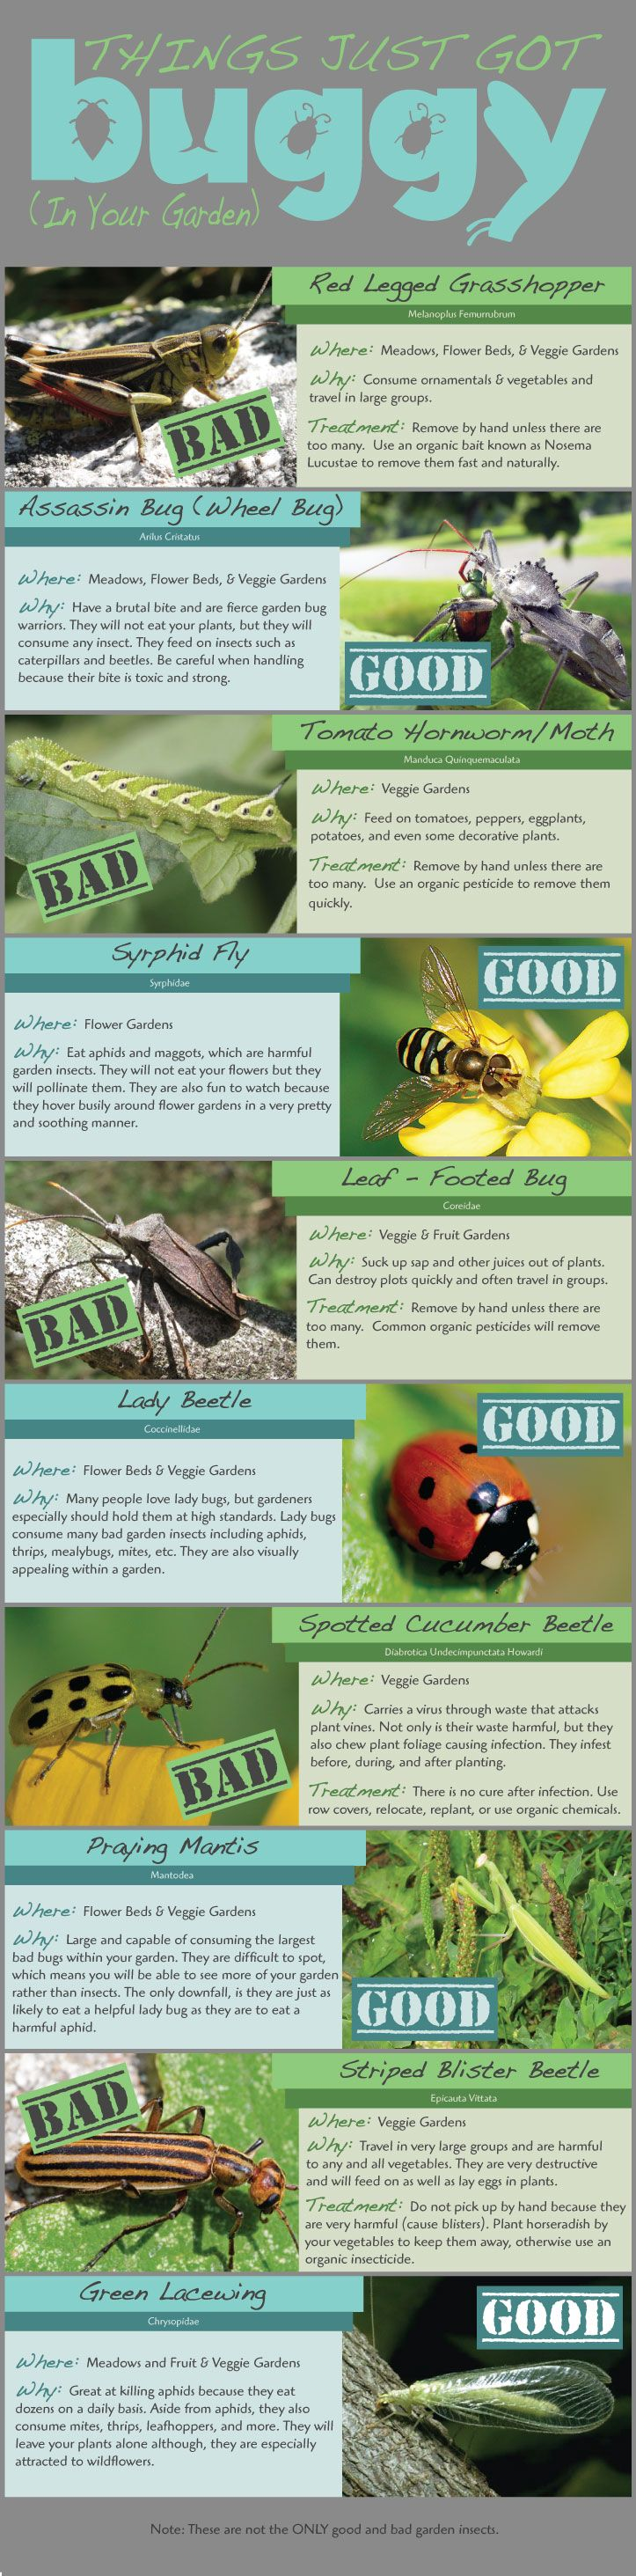 Guide to 10 Garden Bugs! The good, the bad, and the NATURAL remedies! #organic #bugs #good #bad #garden #gardenbugs